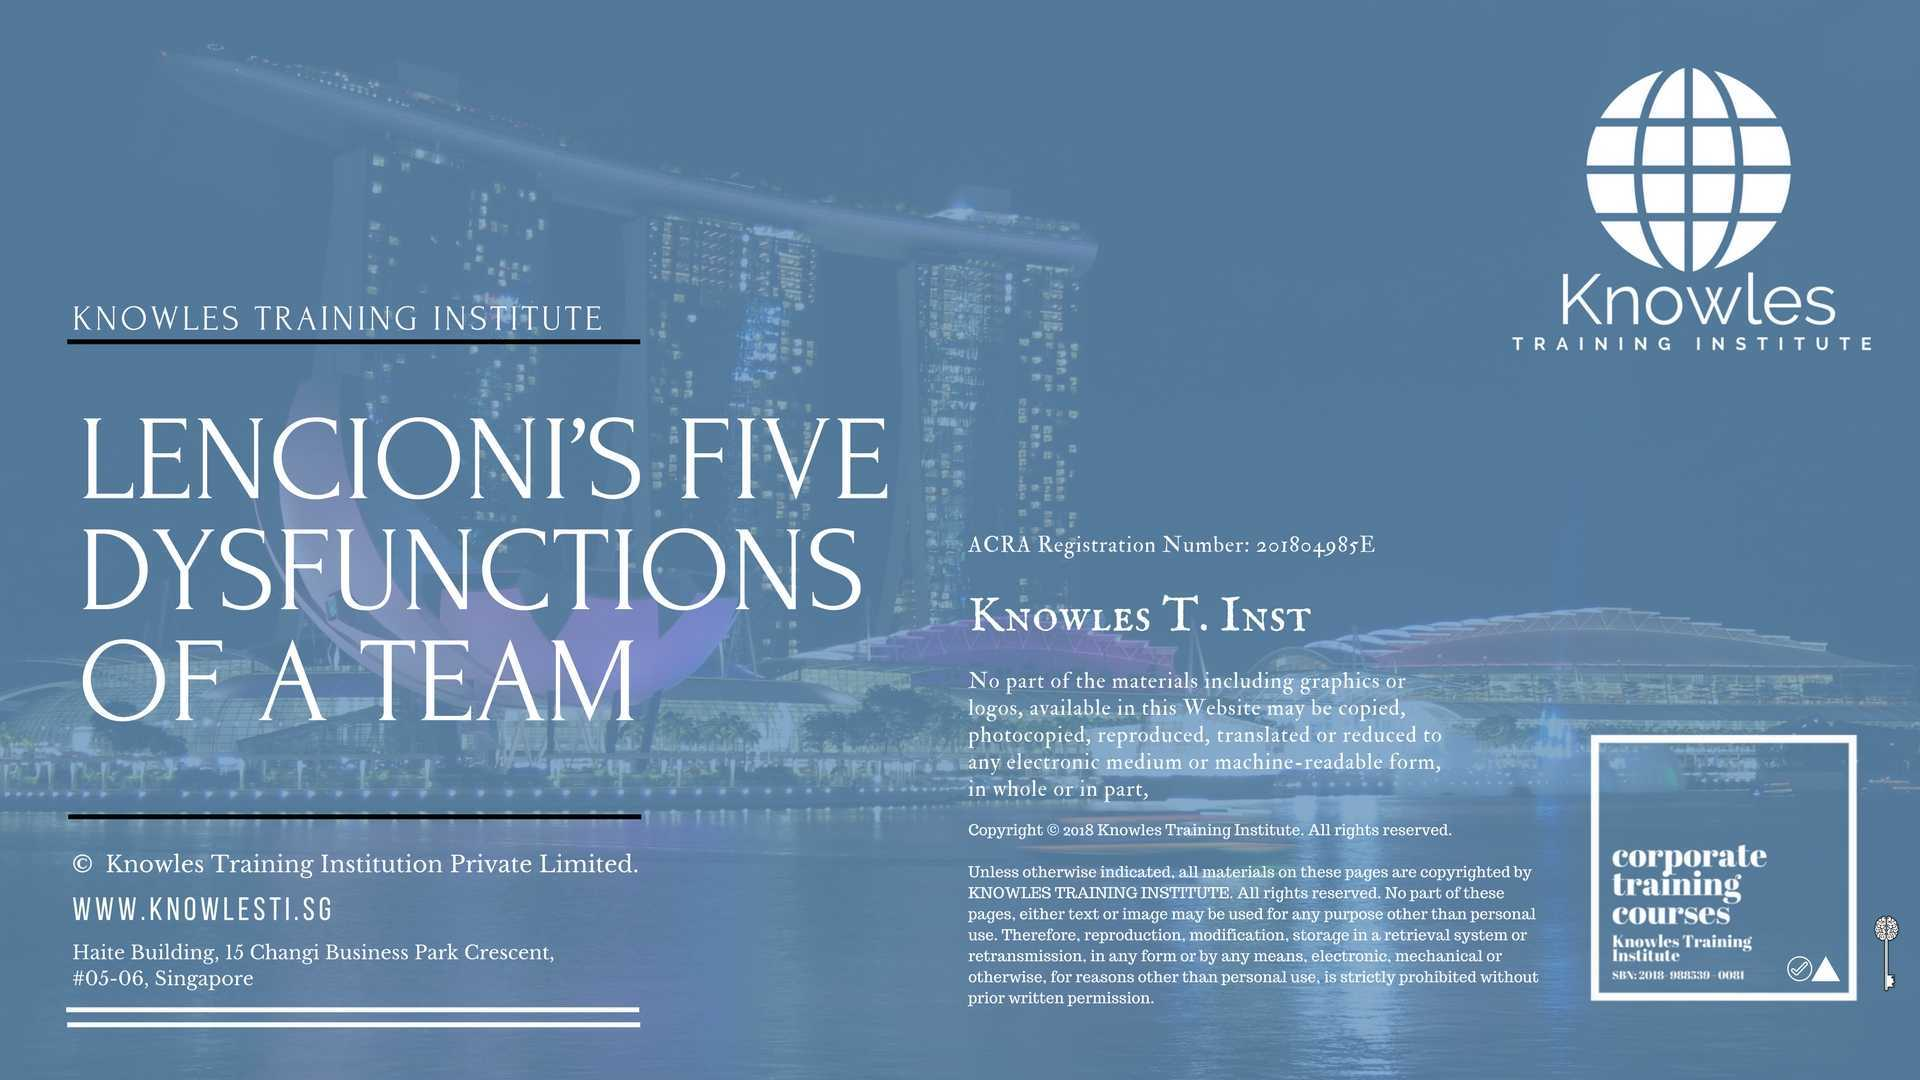 Lencionis Five Dysfunctions Of A Team Course In Singapore